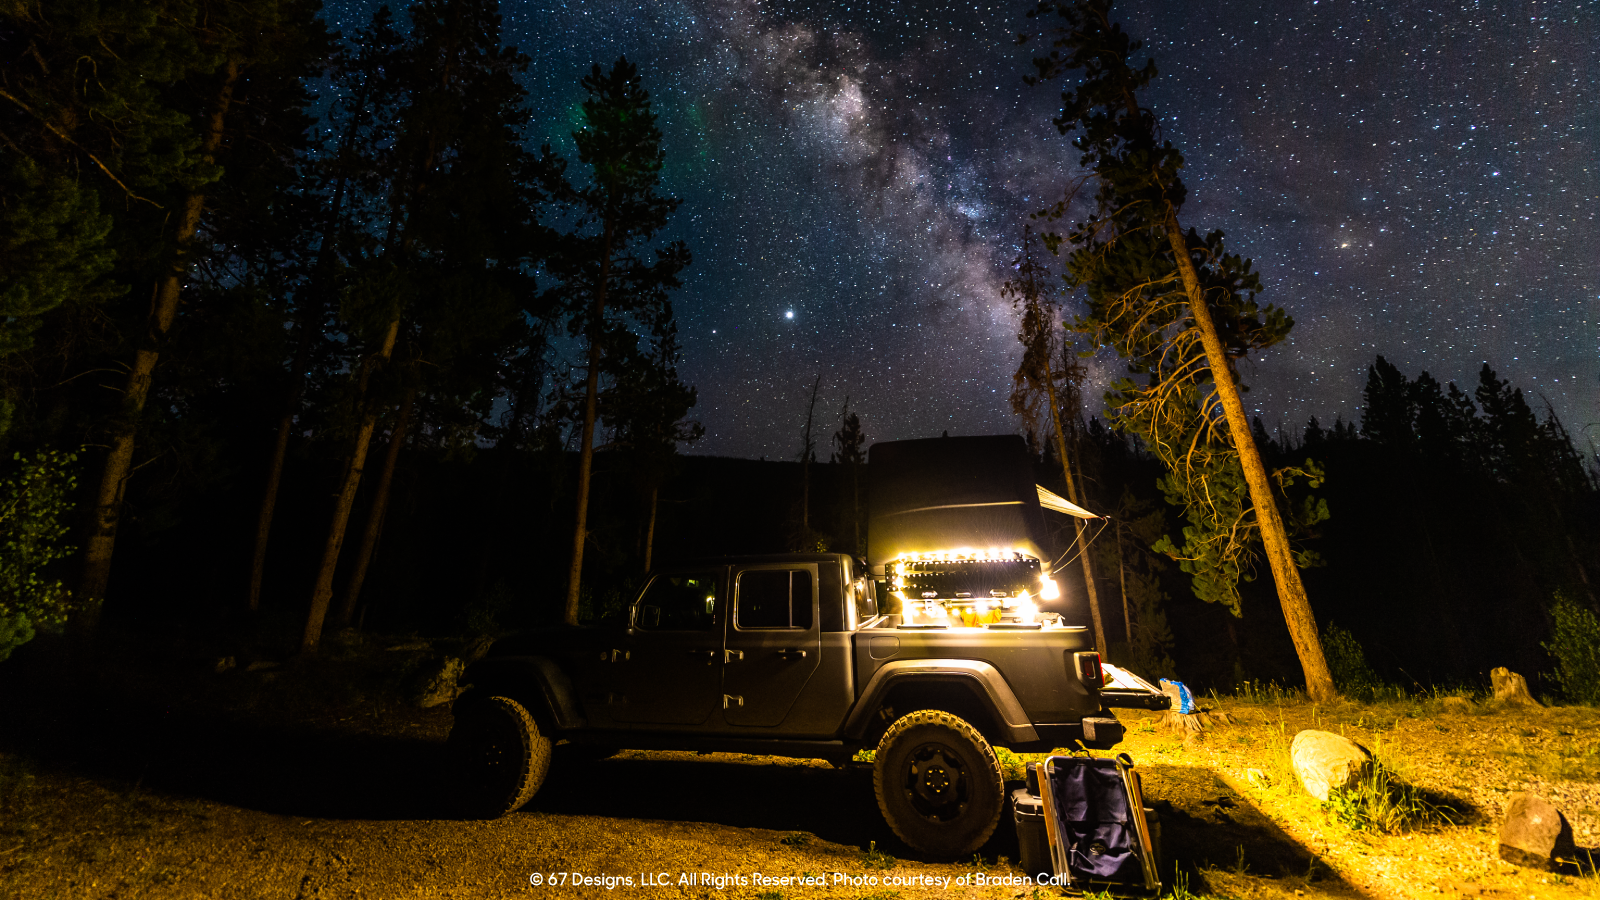 Starry night for the Jeep